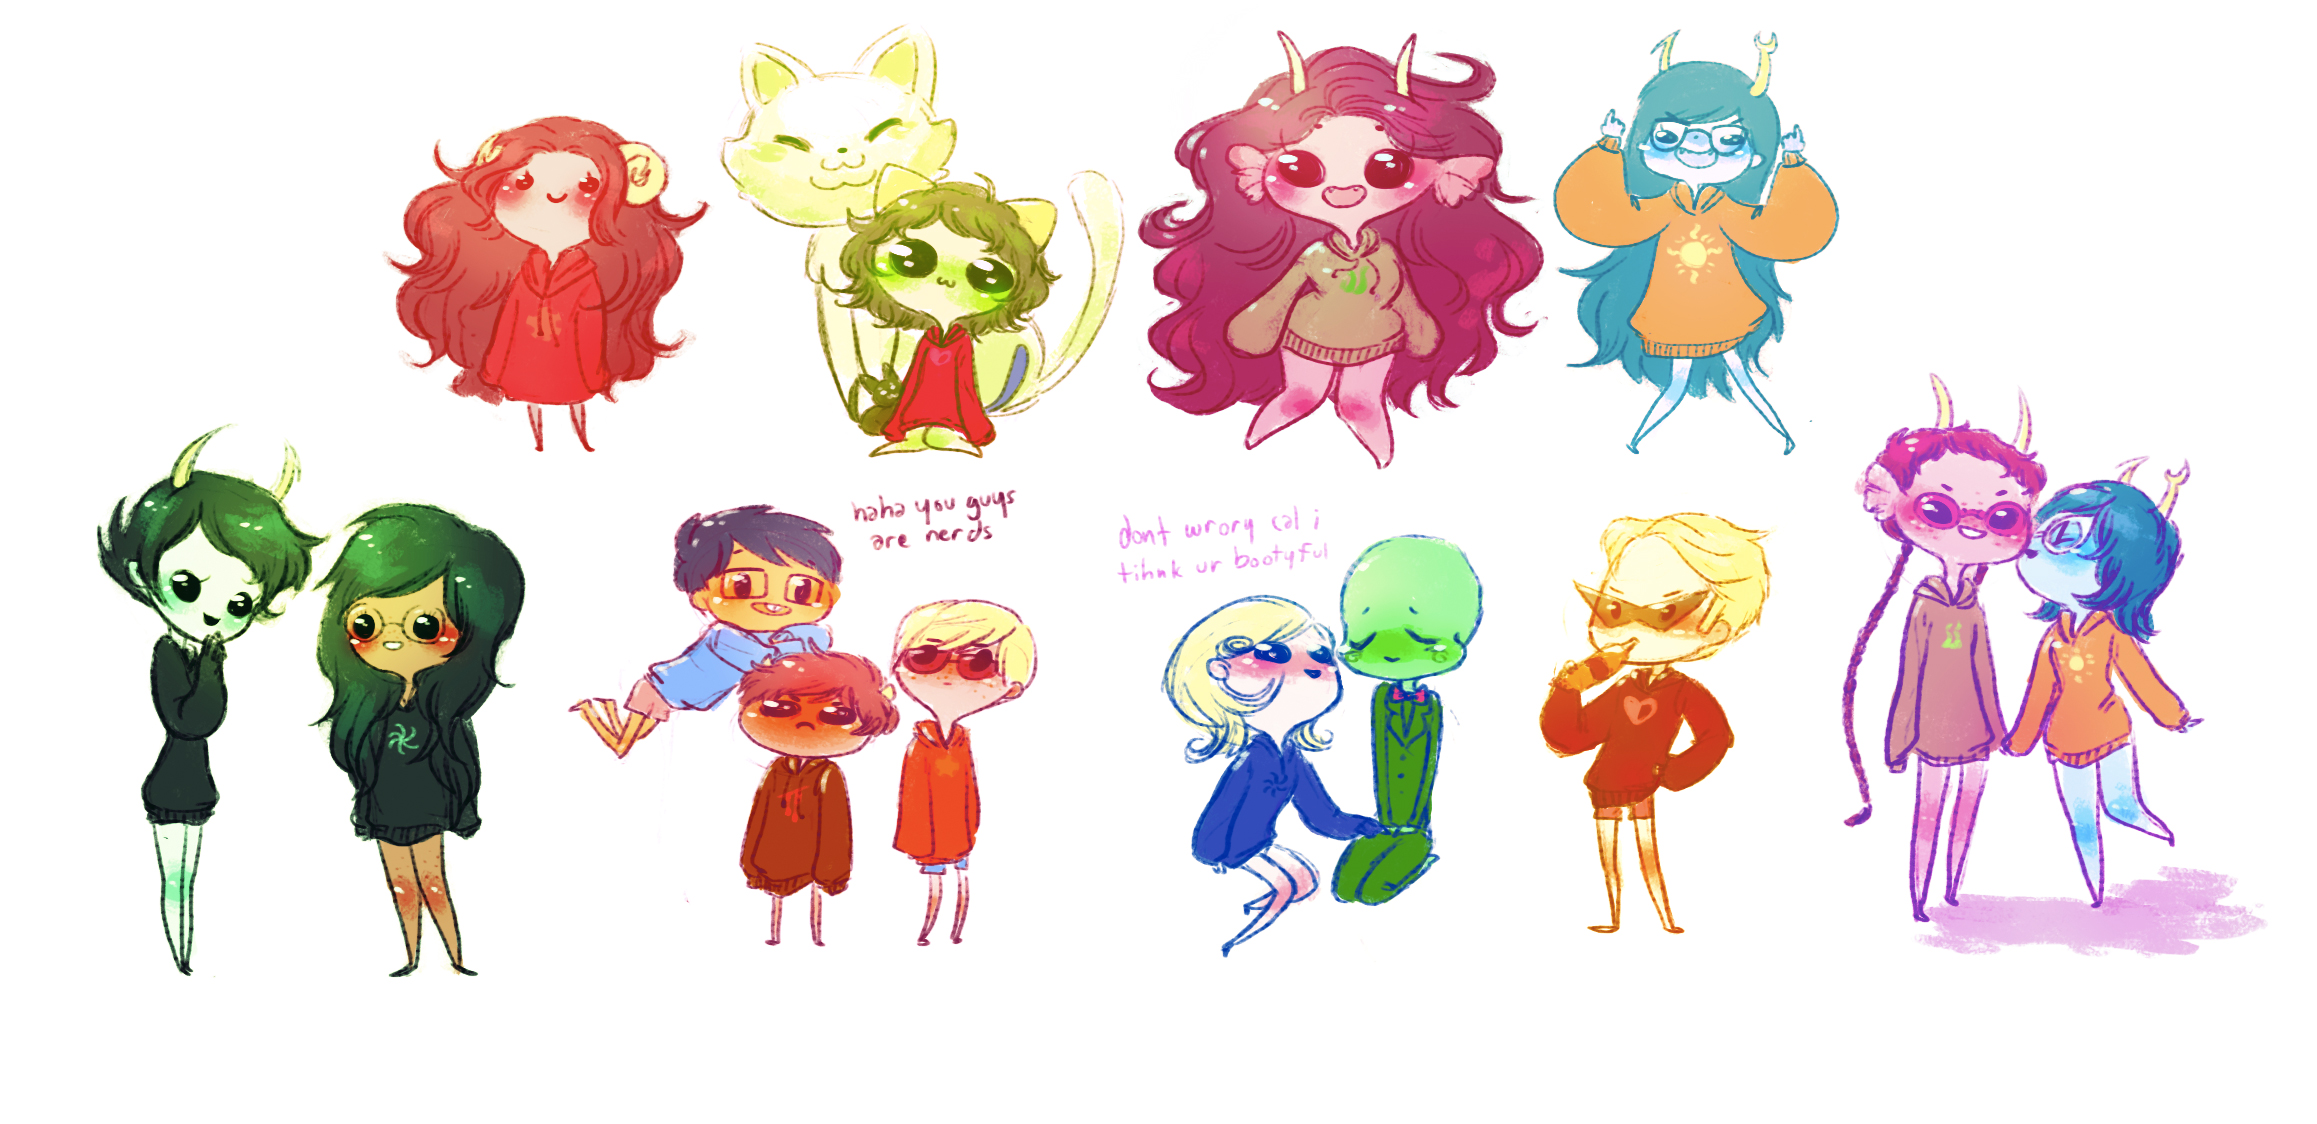 mspa: tiny homestucks by mayakern